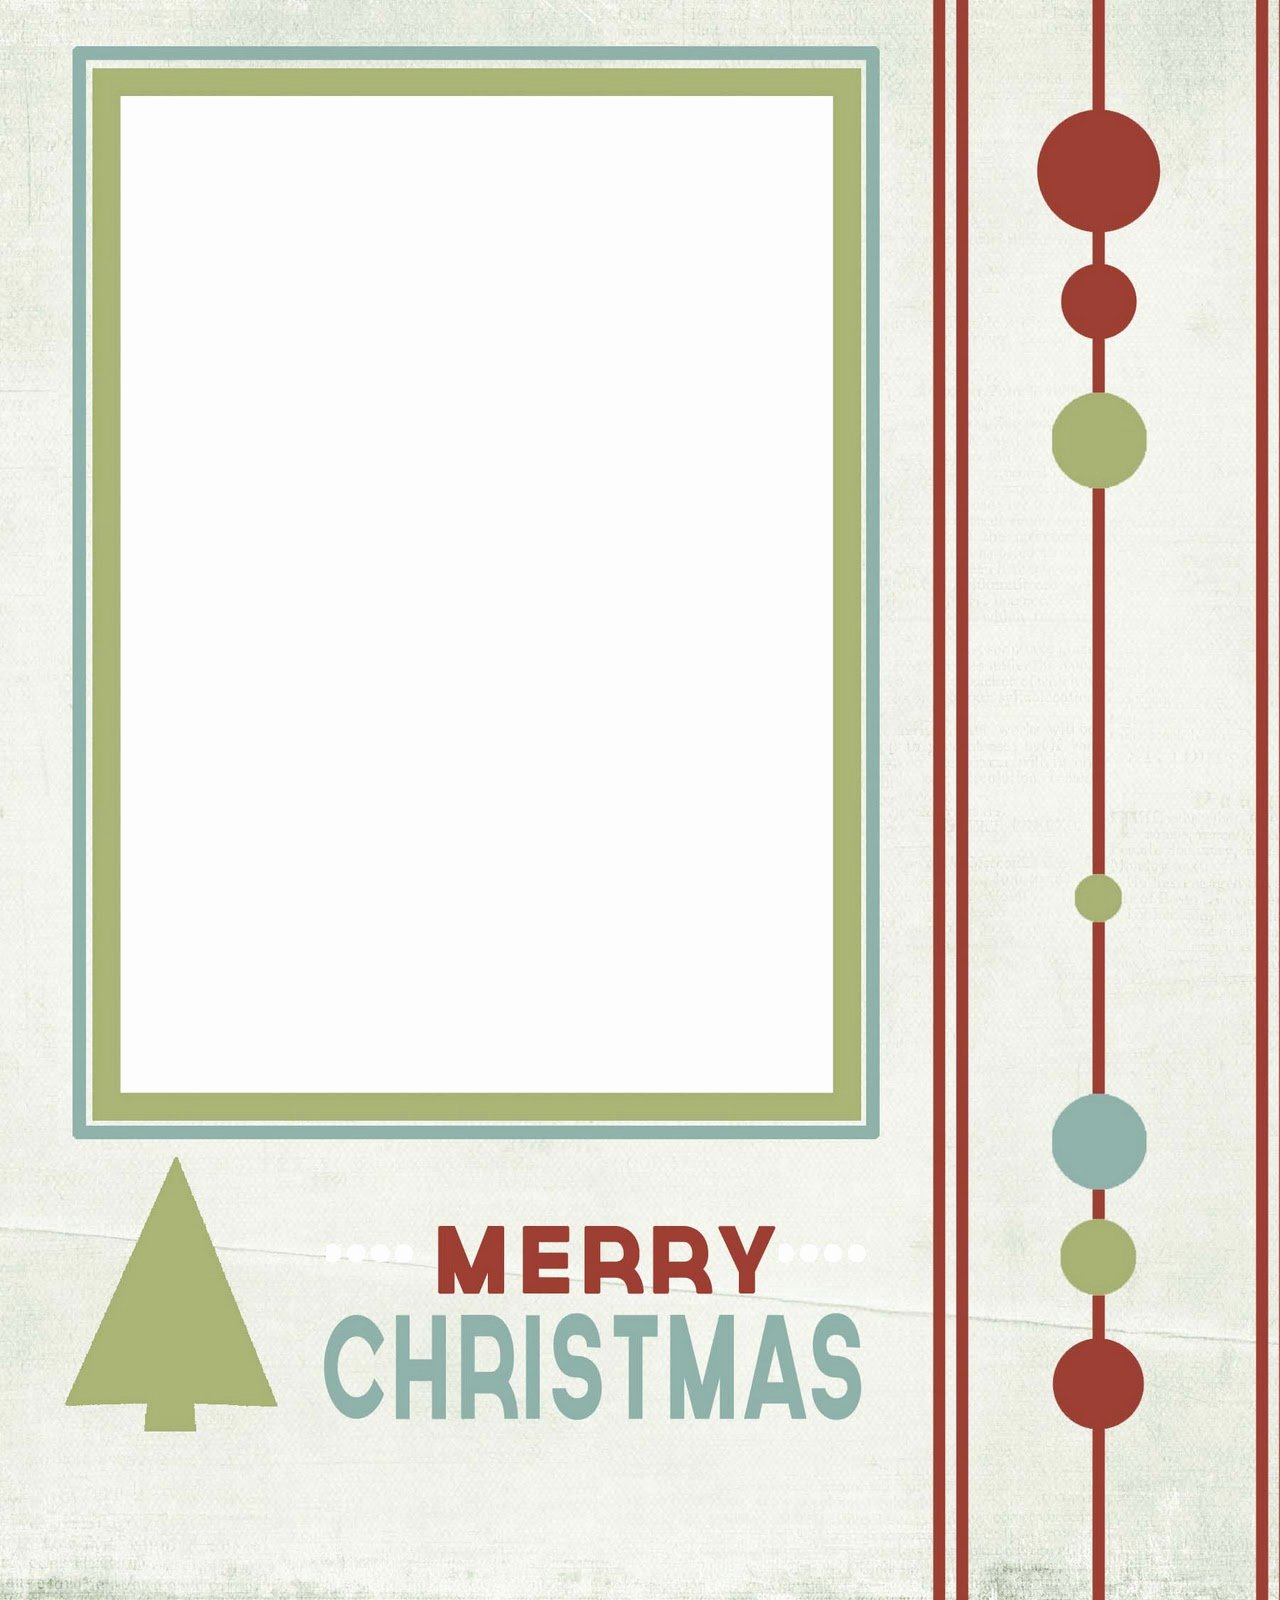 Free Photo Christmas Card Templates Lovely Lovely Little Snippets Christmas Card Display and 5 Free